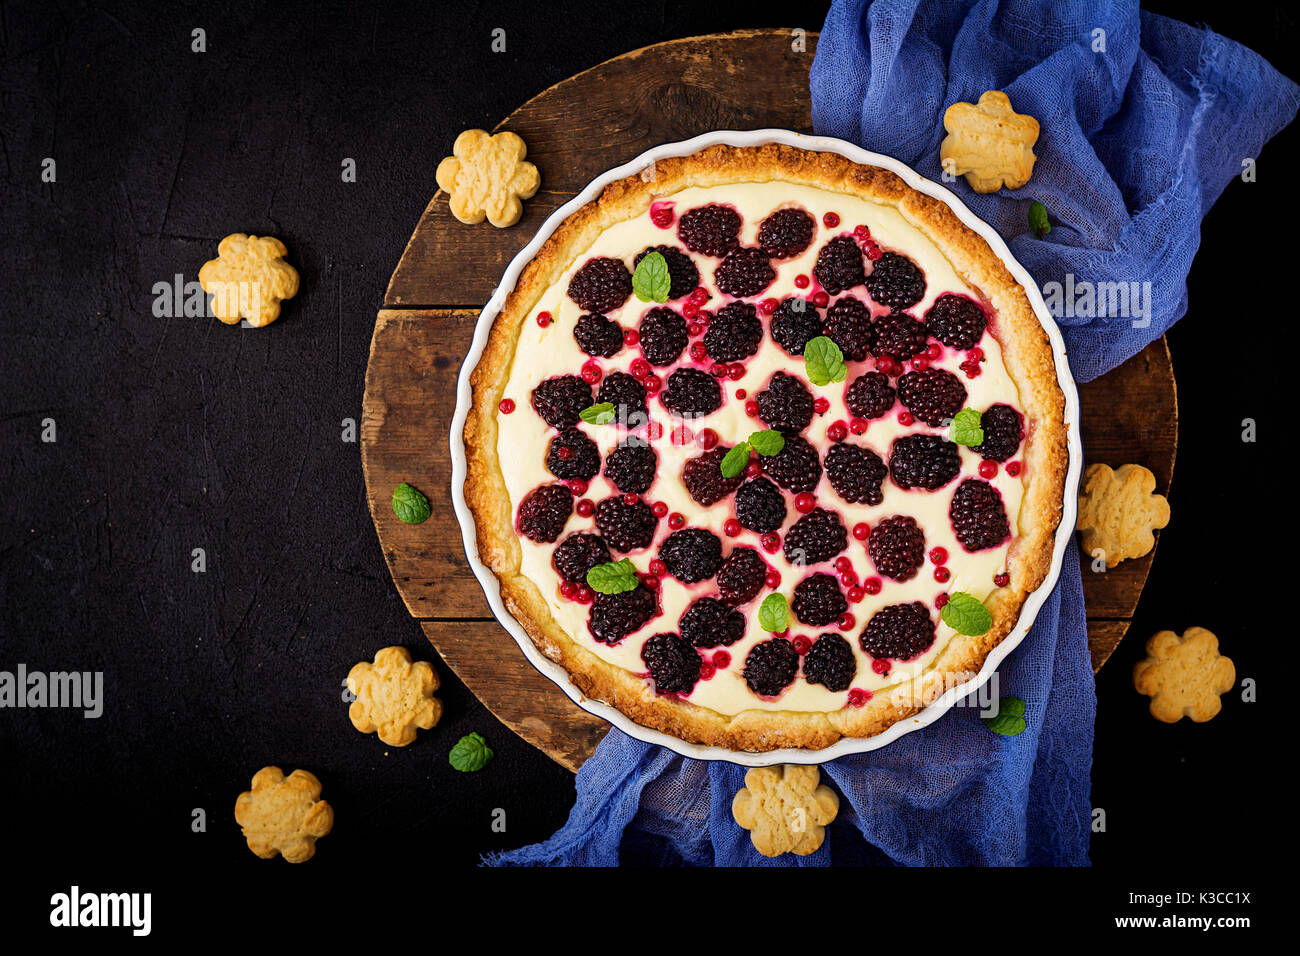 Tart with blackberry and cheesecake cream decorated with mint leaves. Top view. Flat lay - Stock Image